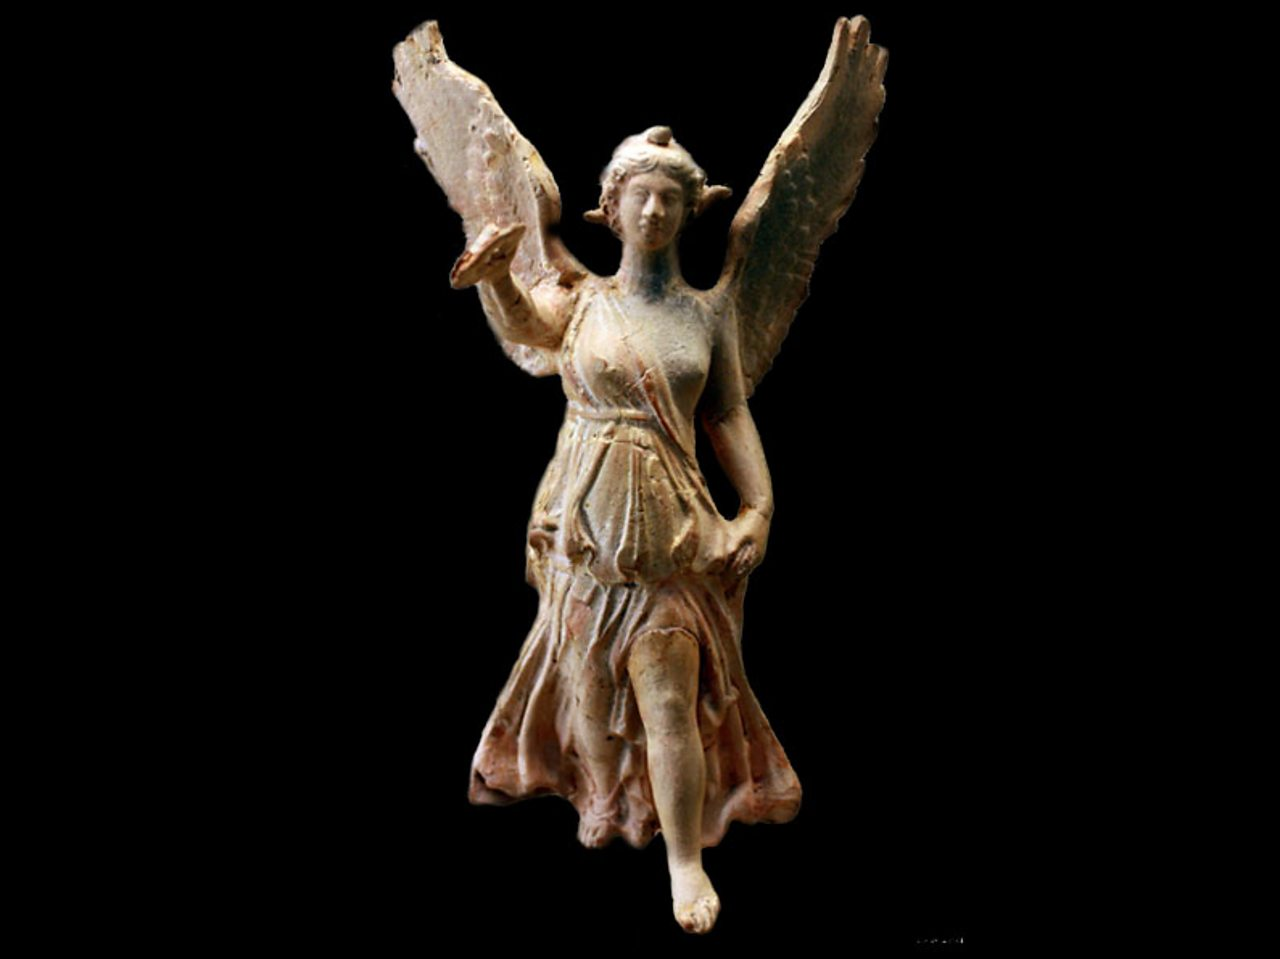 A statue of the winged goddess Nike